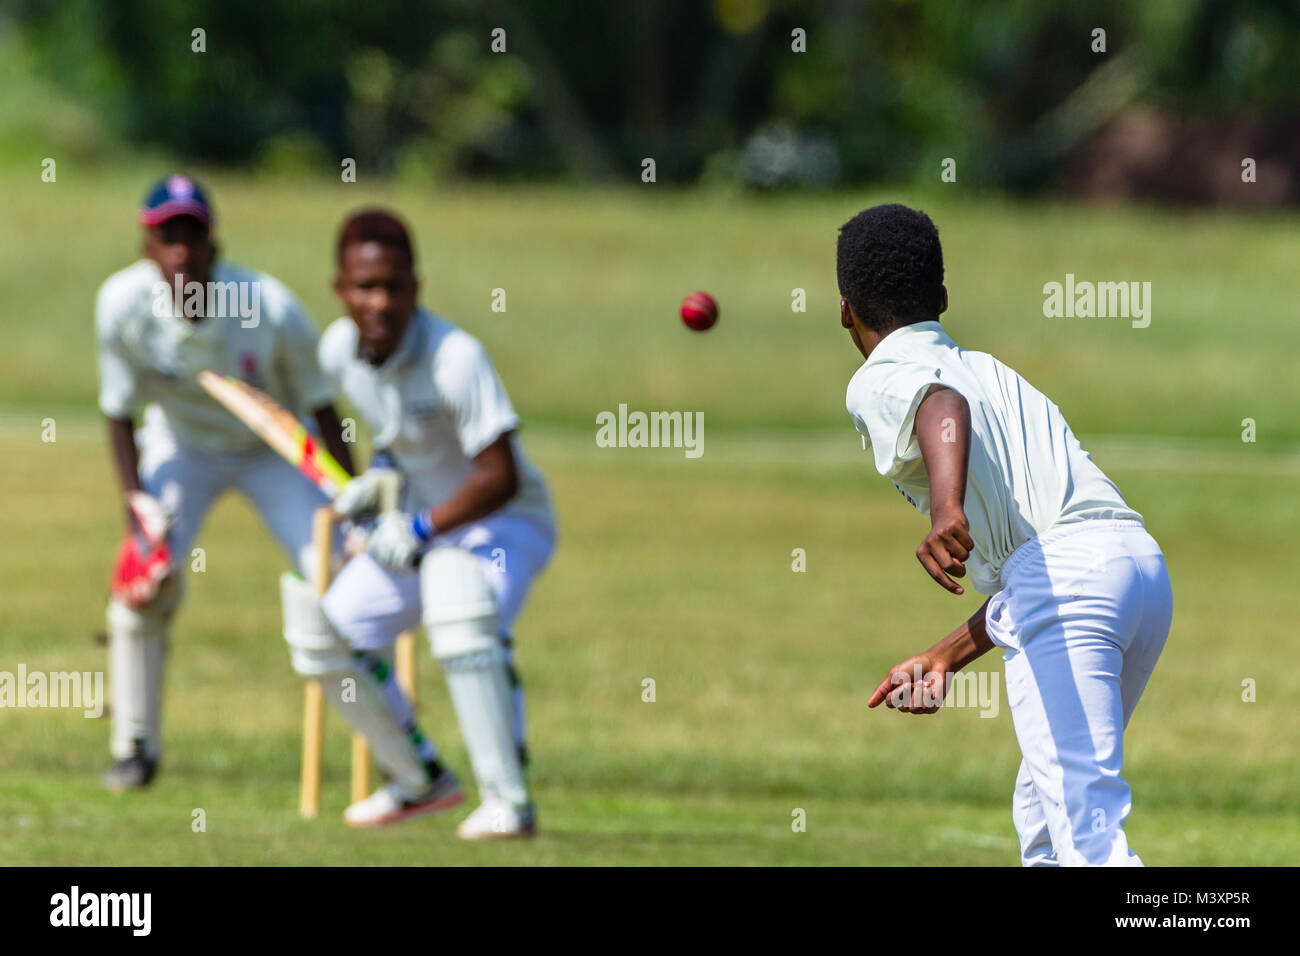 Cricket game action closeup unidentified abstract bowler batsman wicket keeper. - Stock Image